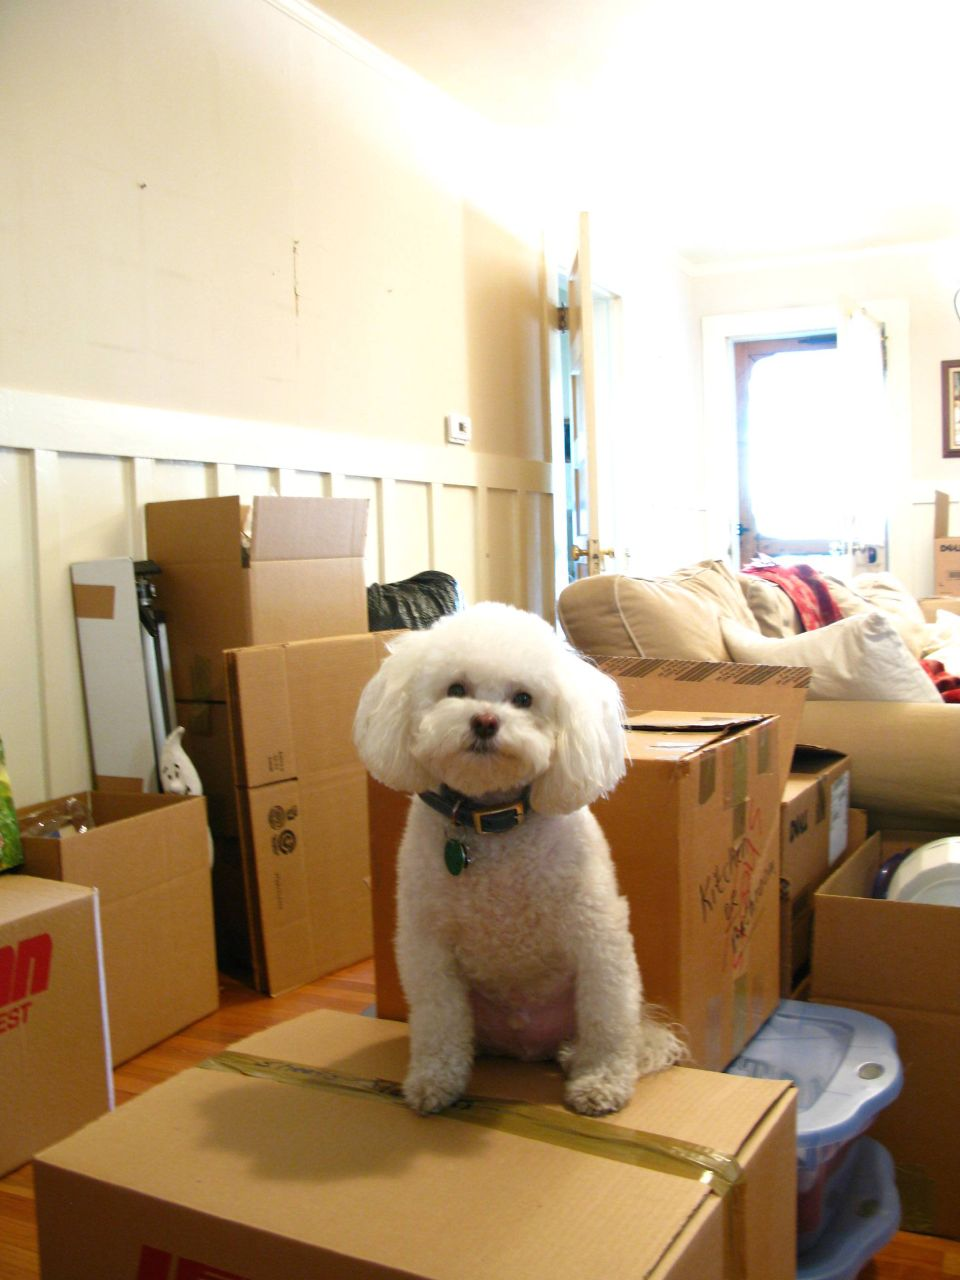 Preparing Your Child for a Move can be more difficult than you might anticipate